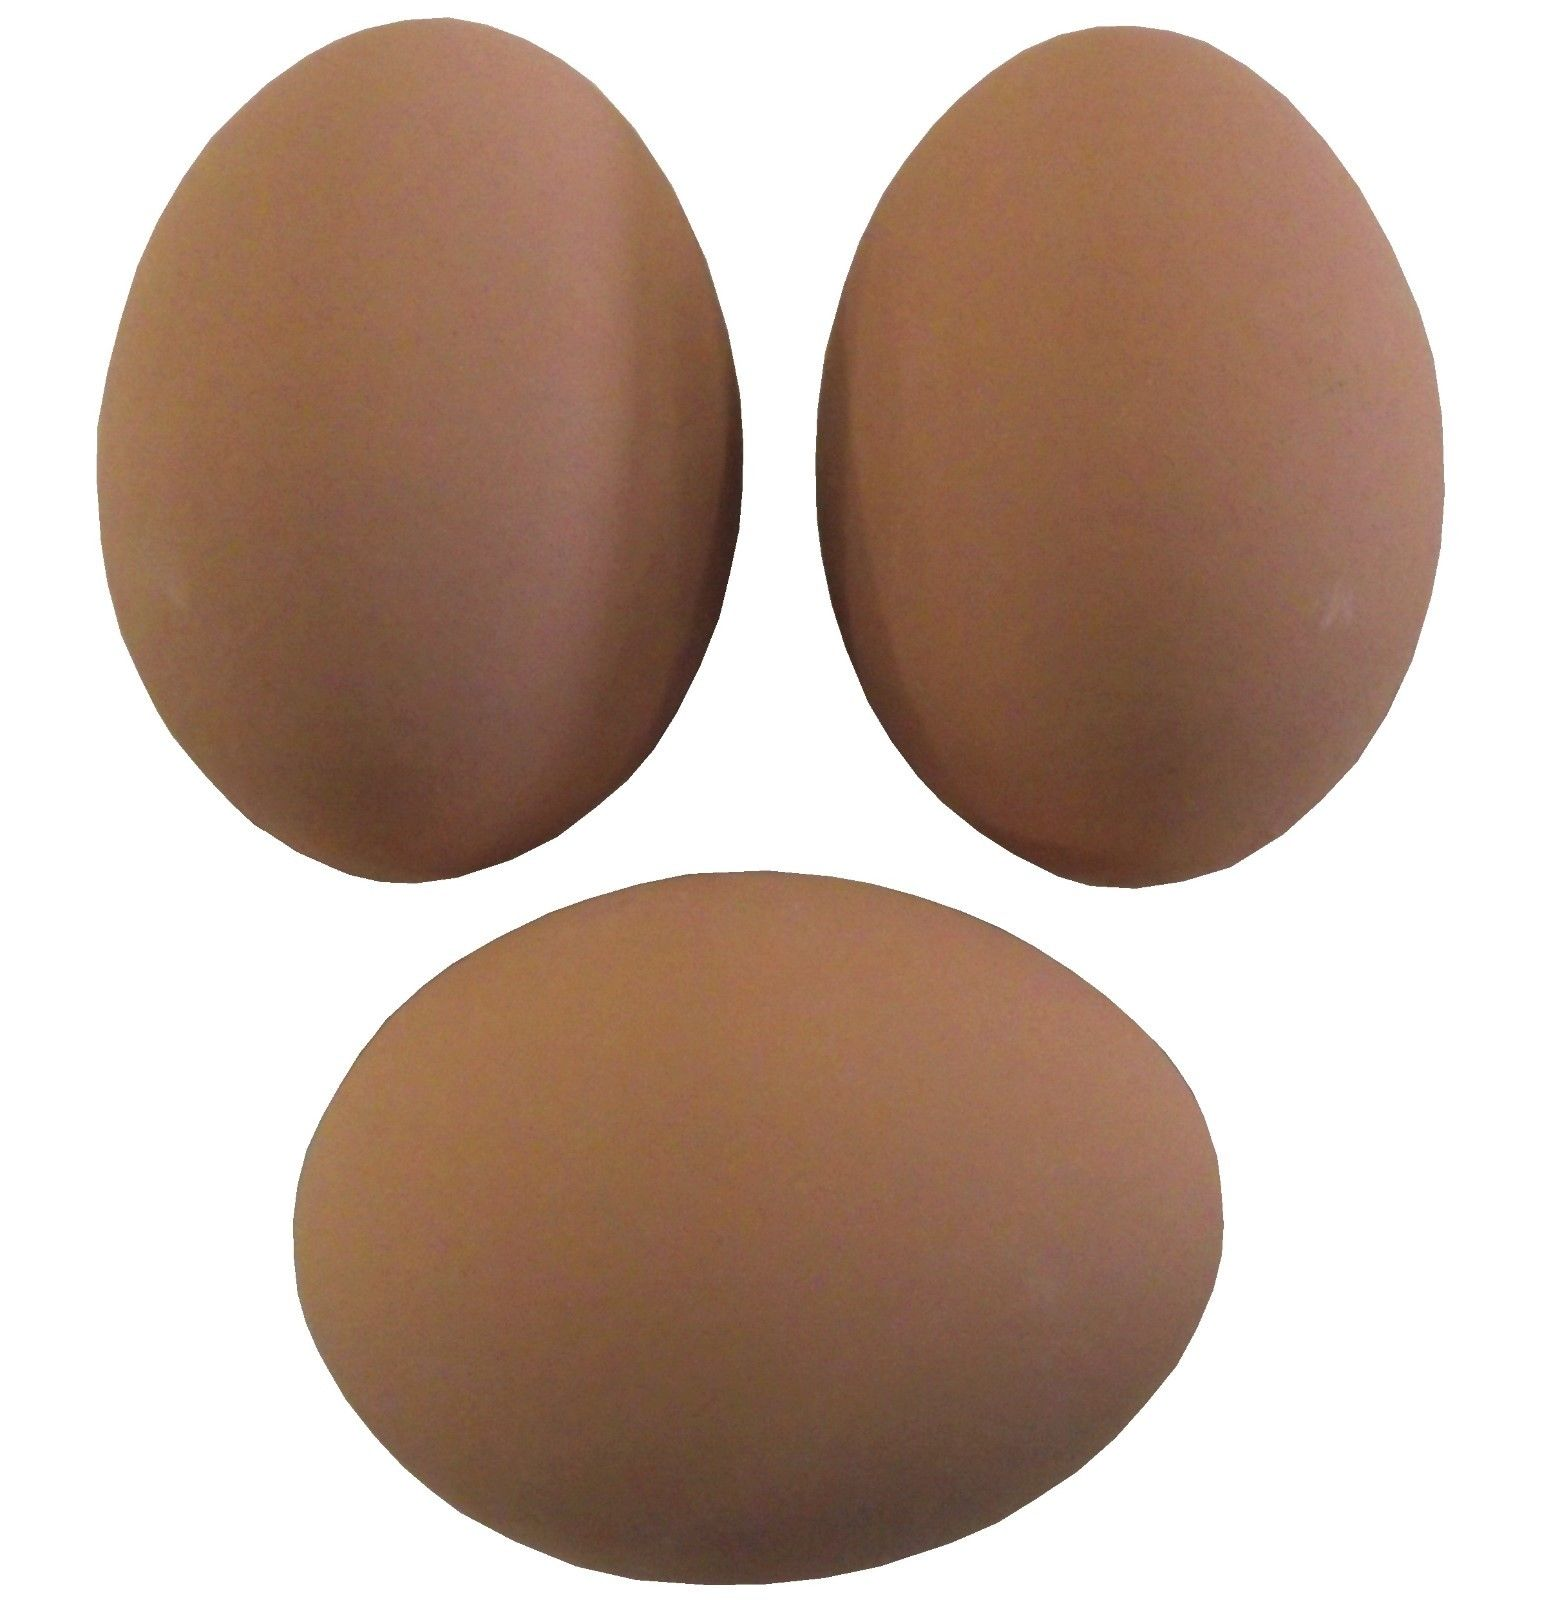 3 PACK BROWN CERAMIC DUMMY CHICKEN NESTING NEST FAKE TRAINING EGG HATCHING CRAFT